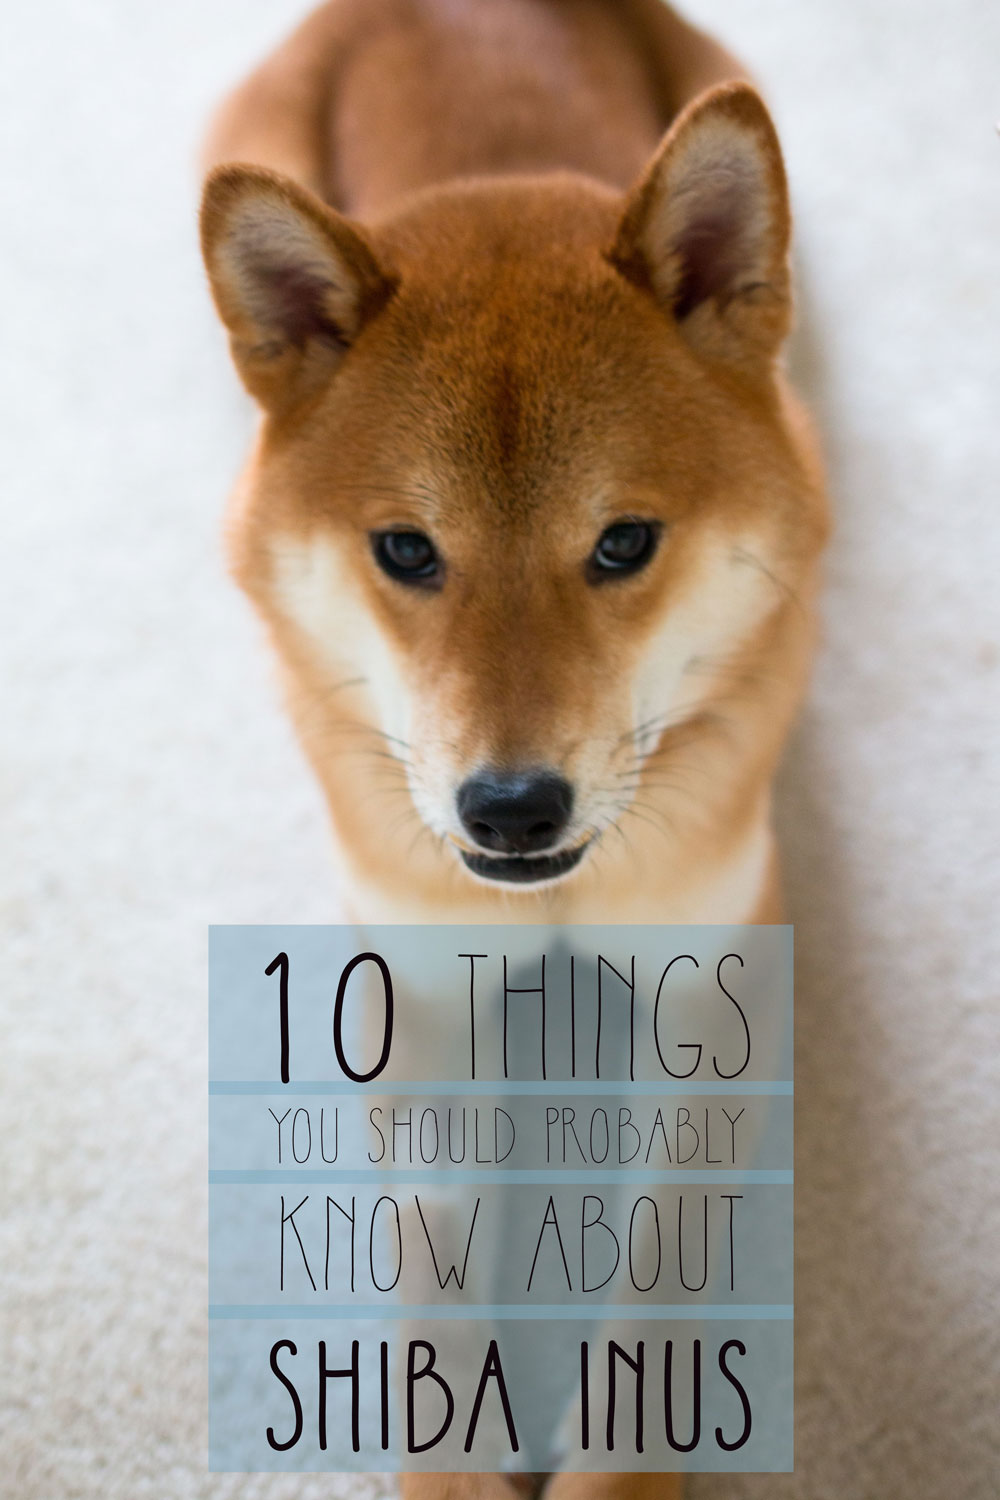 Do Shiba Inus Shed A Lot : shiba, Shiba, Temperament, Other, Things, Should, About